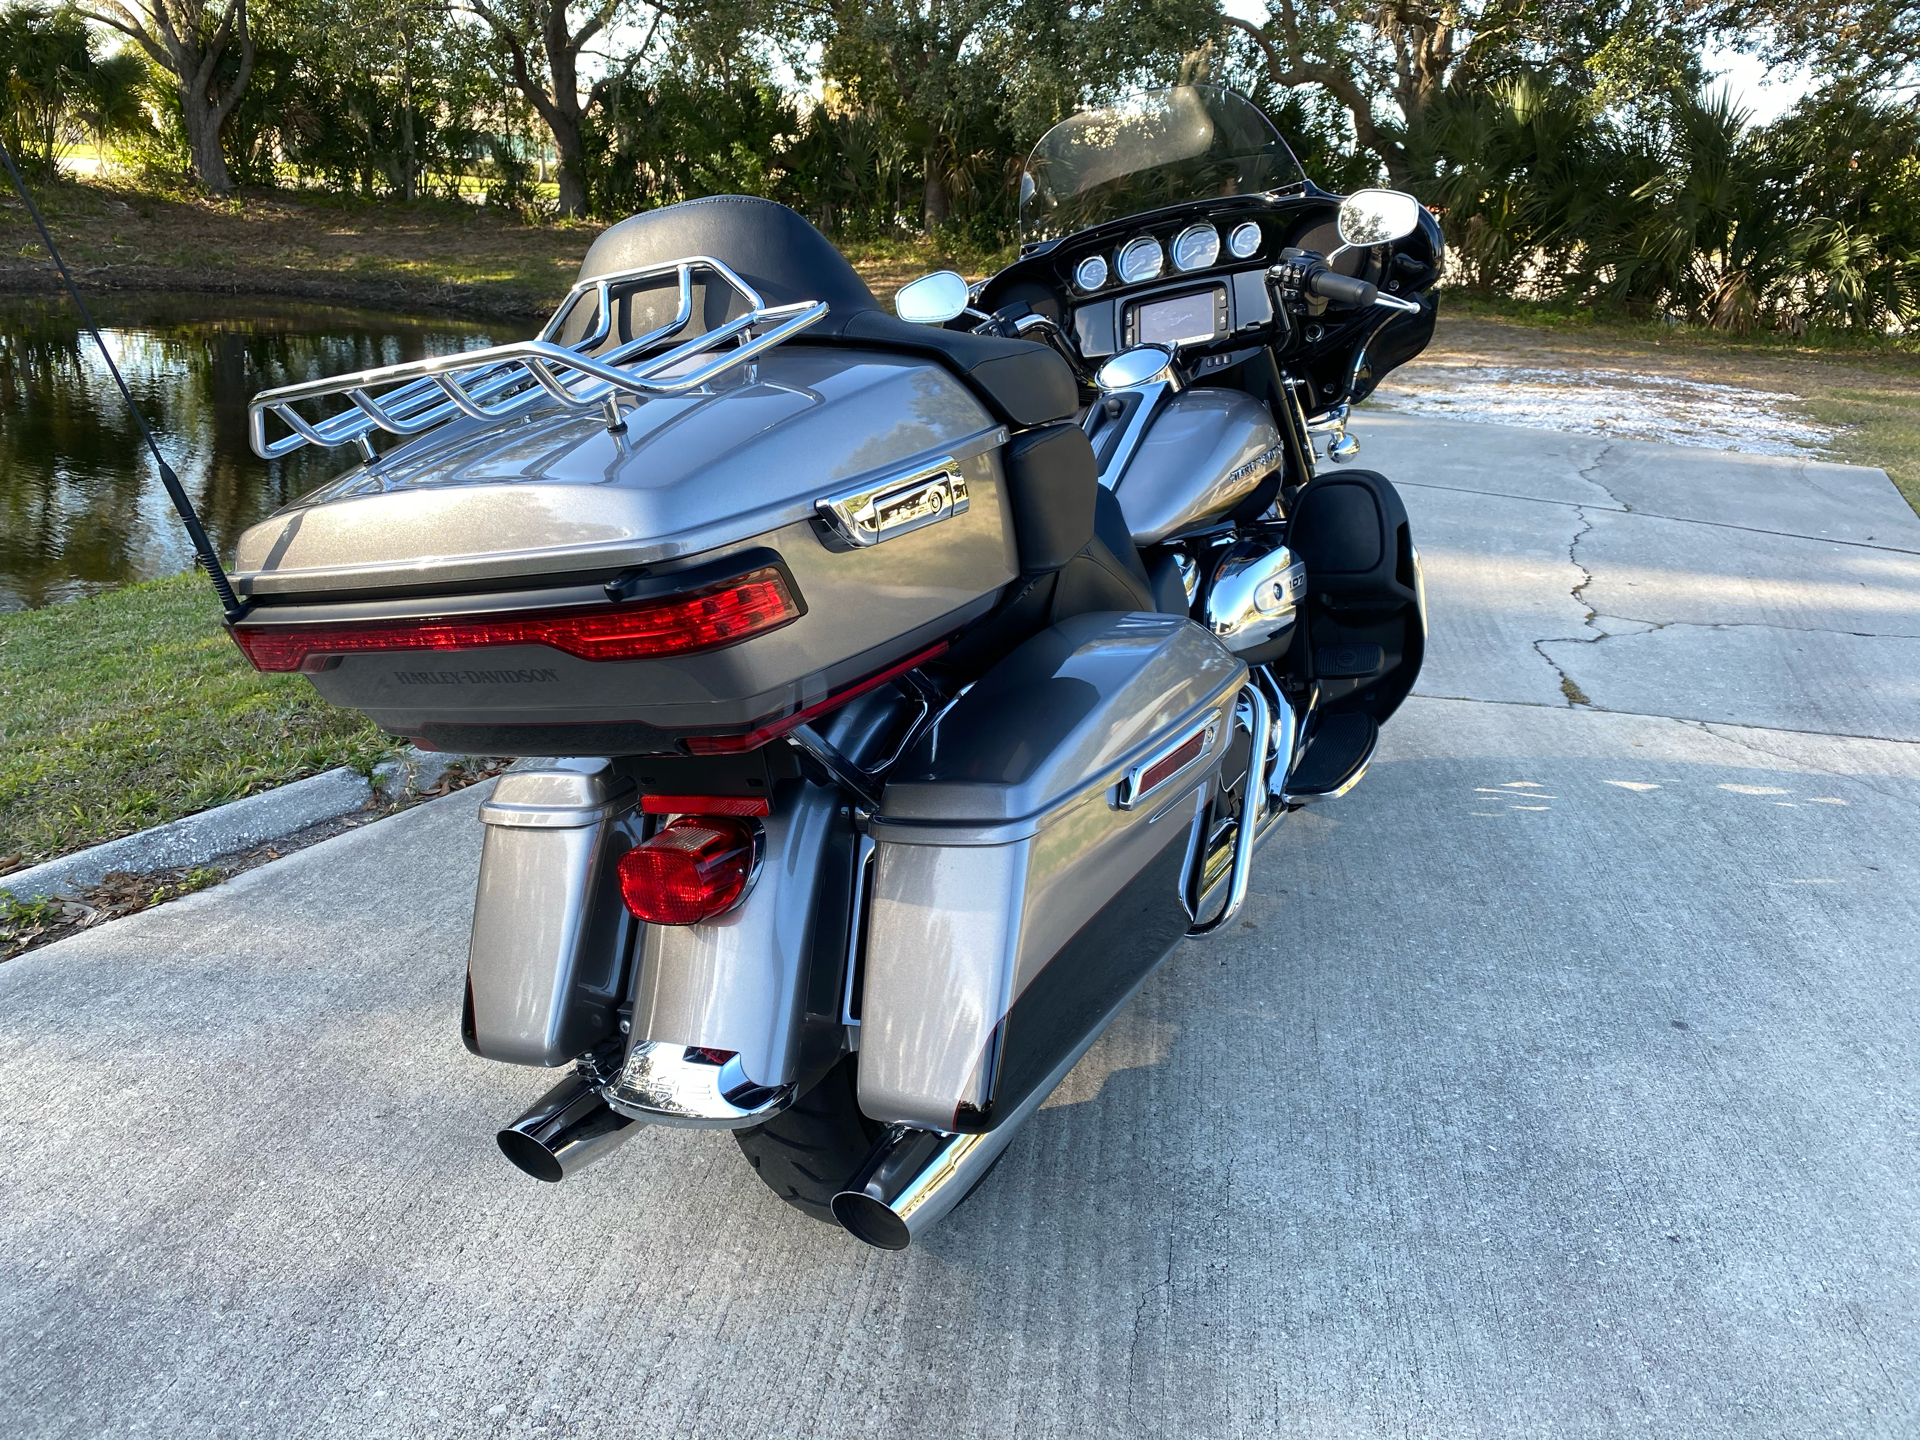 2017 Harley-Davidson Ultra Limited in Sarasota, Florida - Photo 3